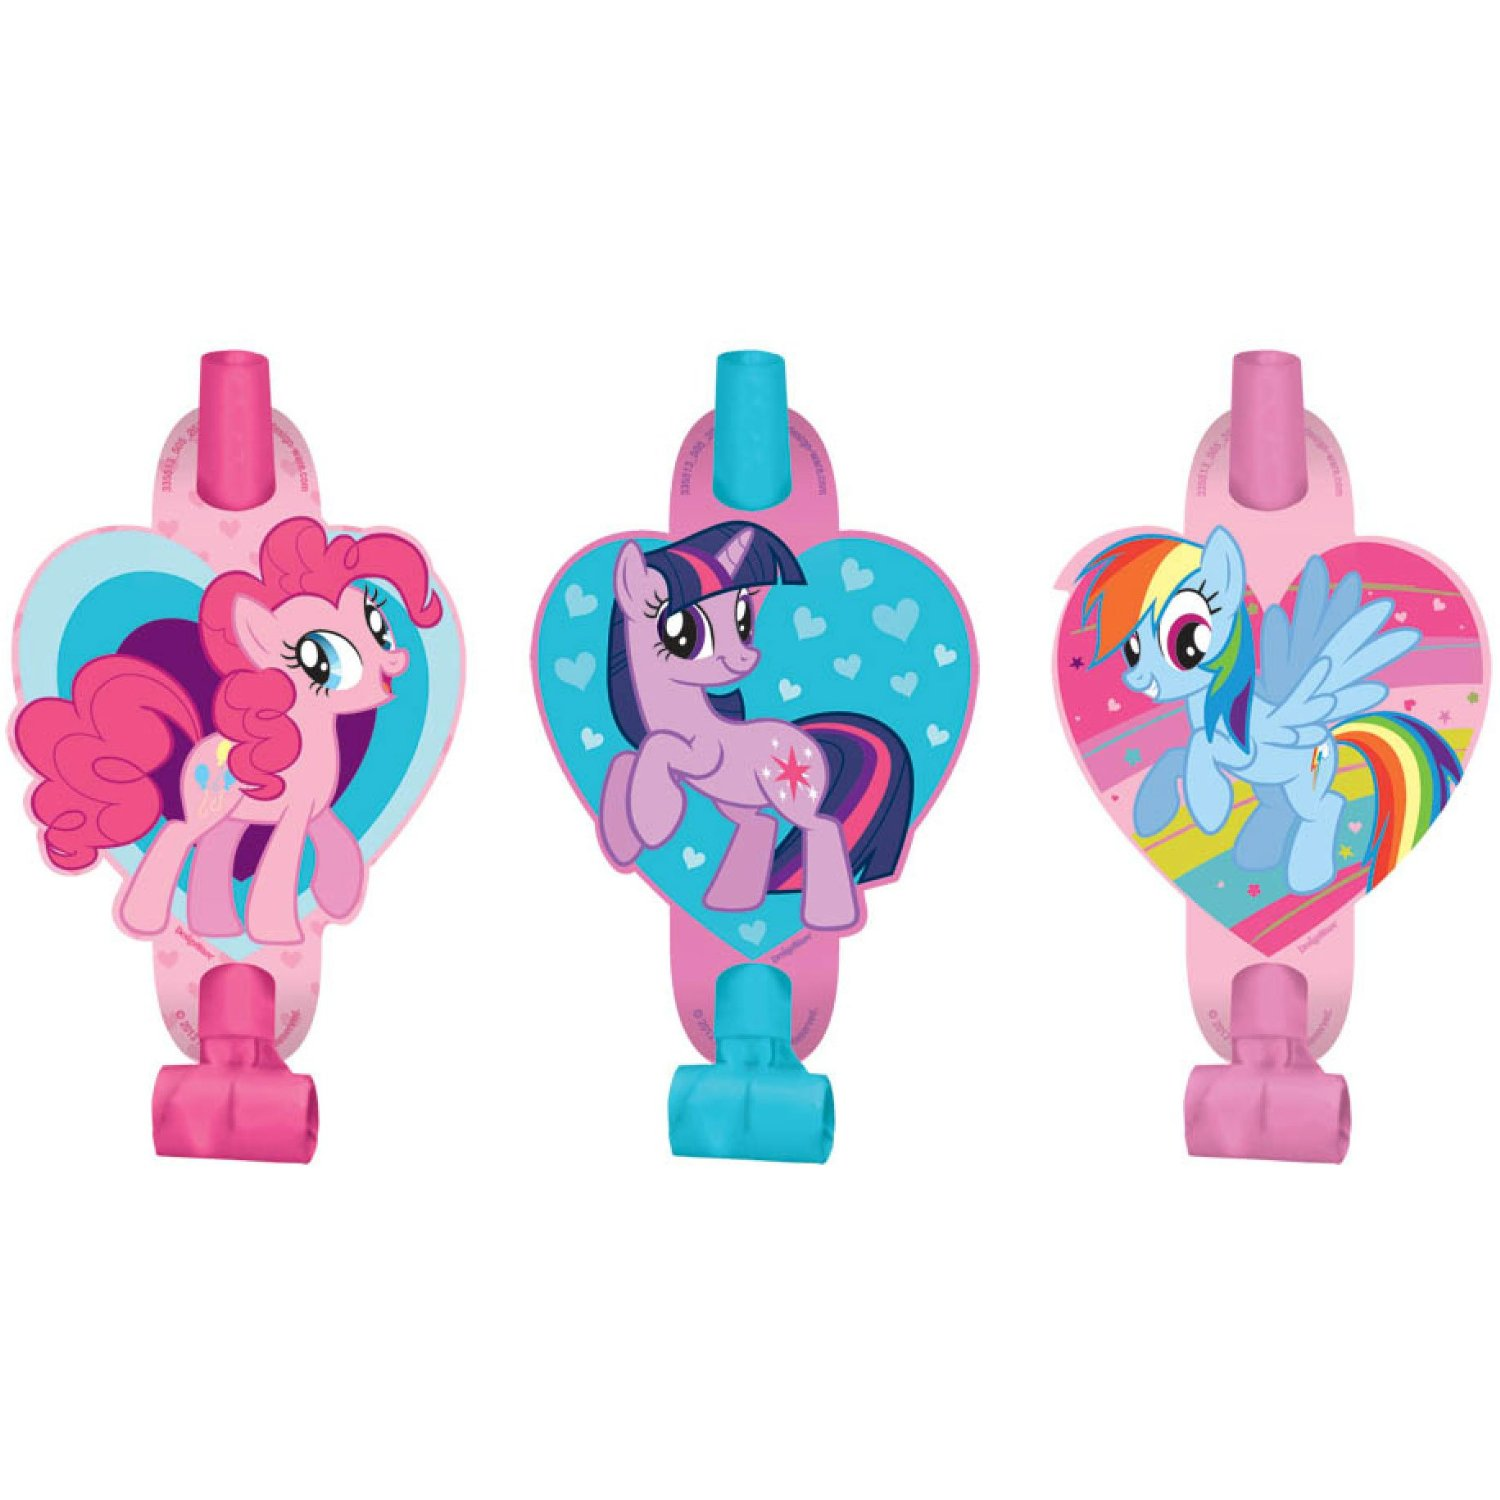 My Little Pony Friendship Magic, Blowouts Asst., 8pk